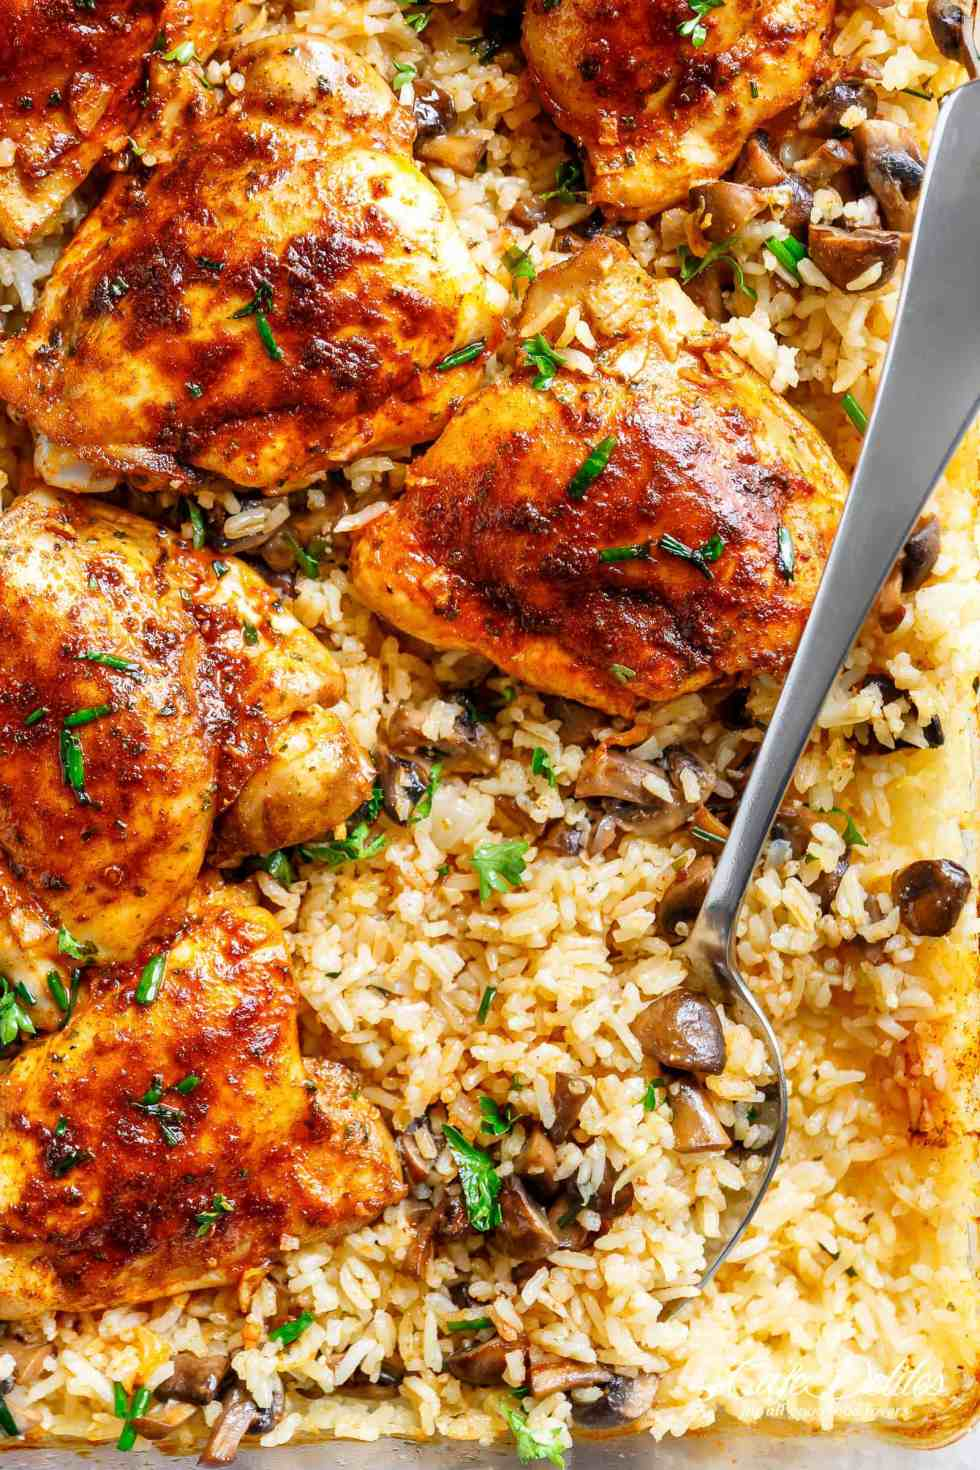 Easy Oven Baked Chicken And Rice With Garlic Butter Mushrooms mixed through is winner of a chicken dinner! Chicken thighs bake on top of buttery, garlicky, soft and tenderrice with crispy edges.ALL the chicken flavours bake right in! Dinner doesn't get any easier! | cafedelites.com